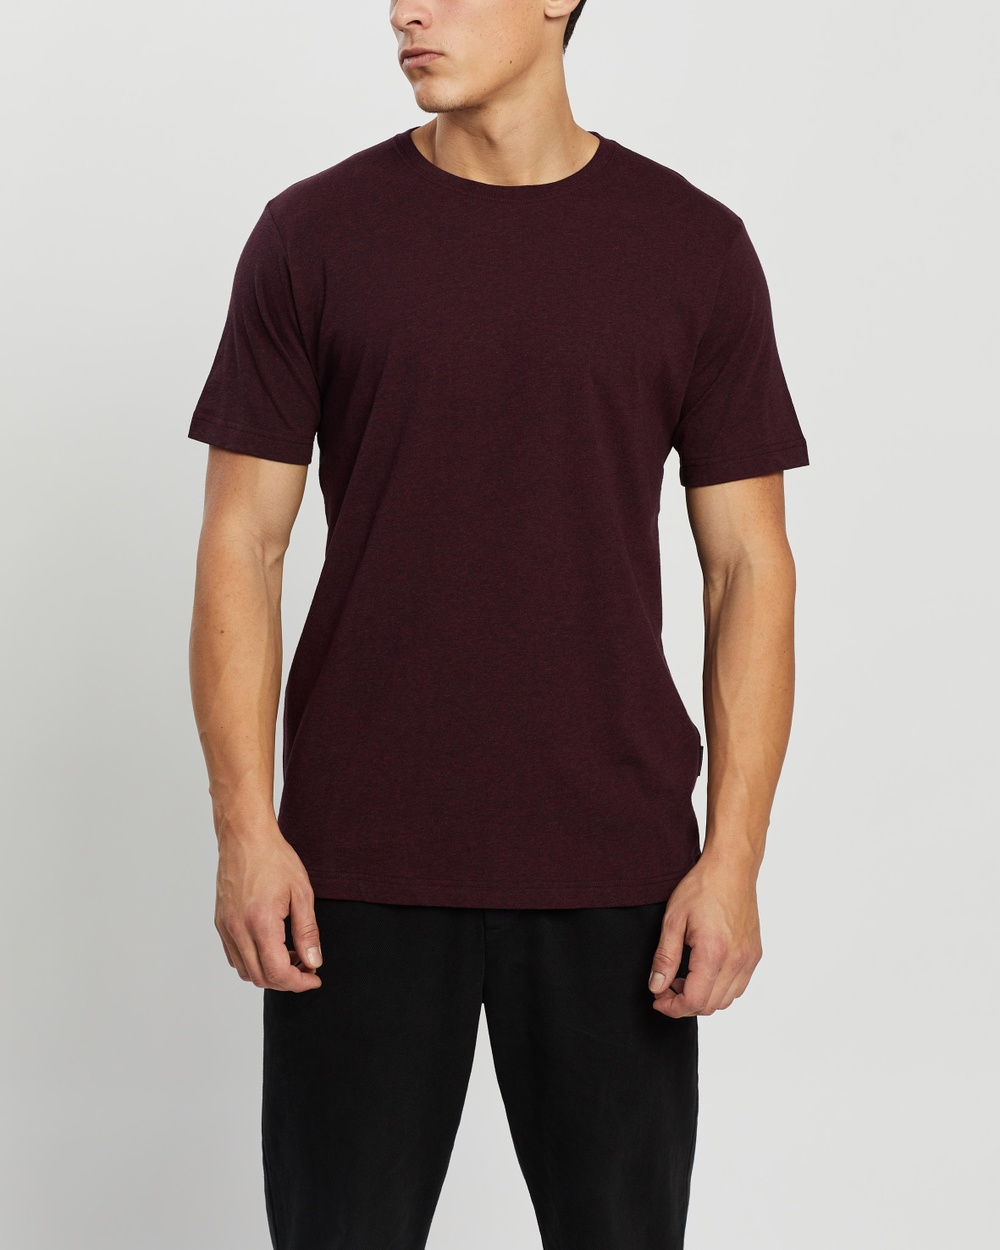 Mr Simple - Reginald Tee - T-Shirts & Singlets (Burgundy Marle) Reginald Tee